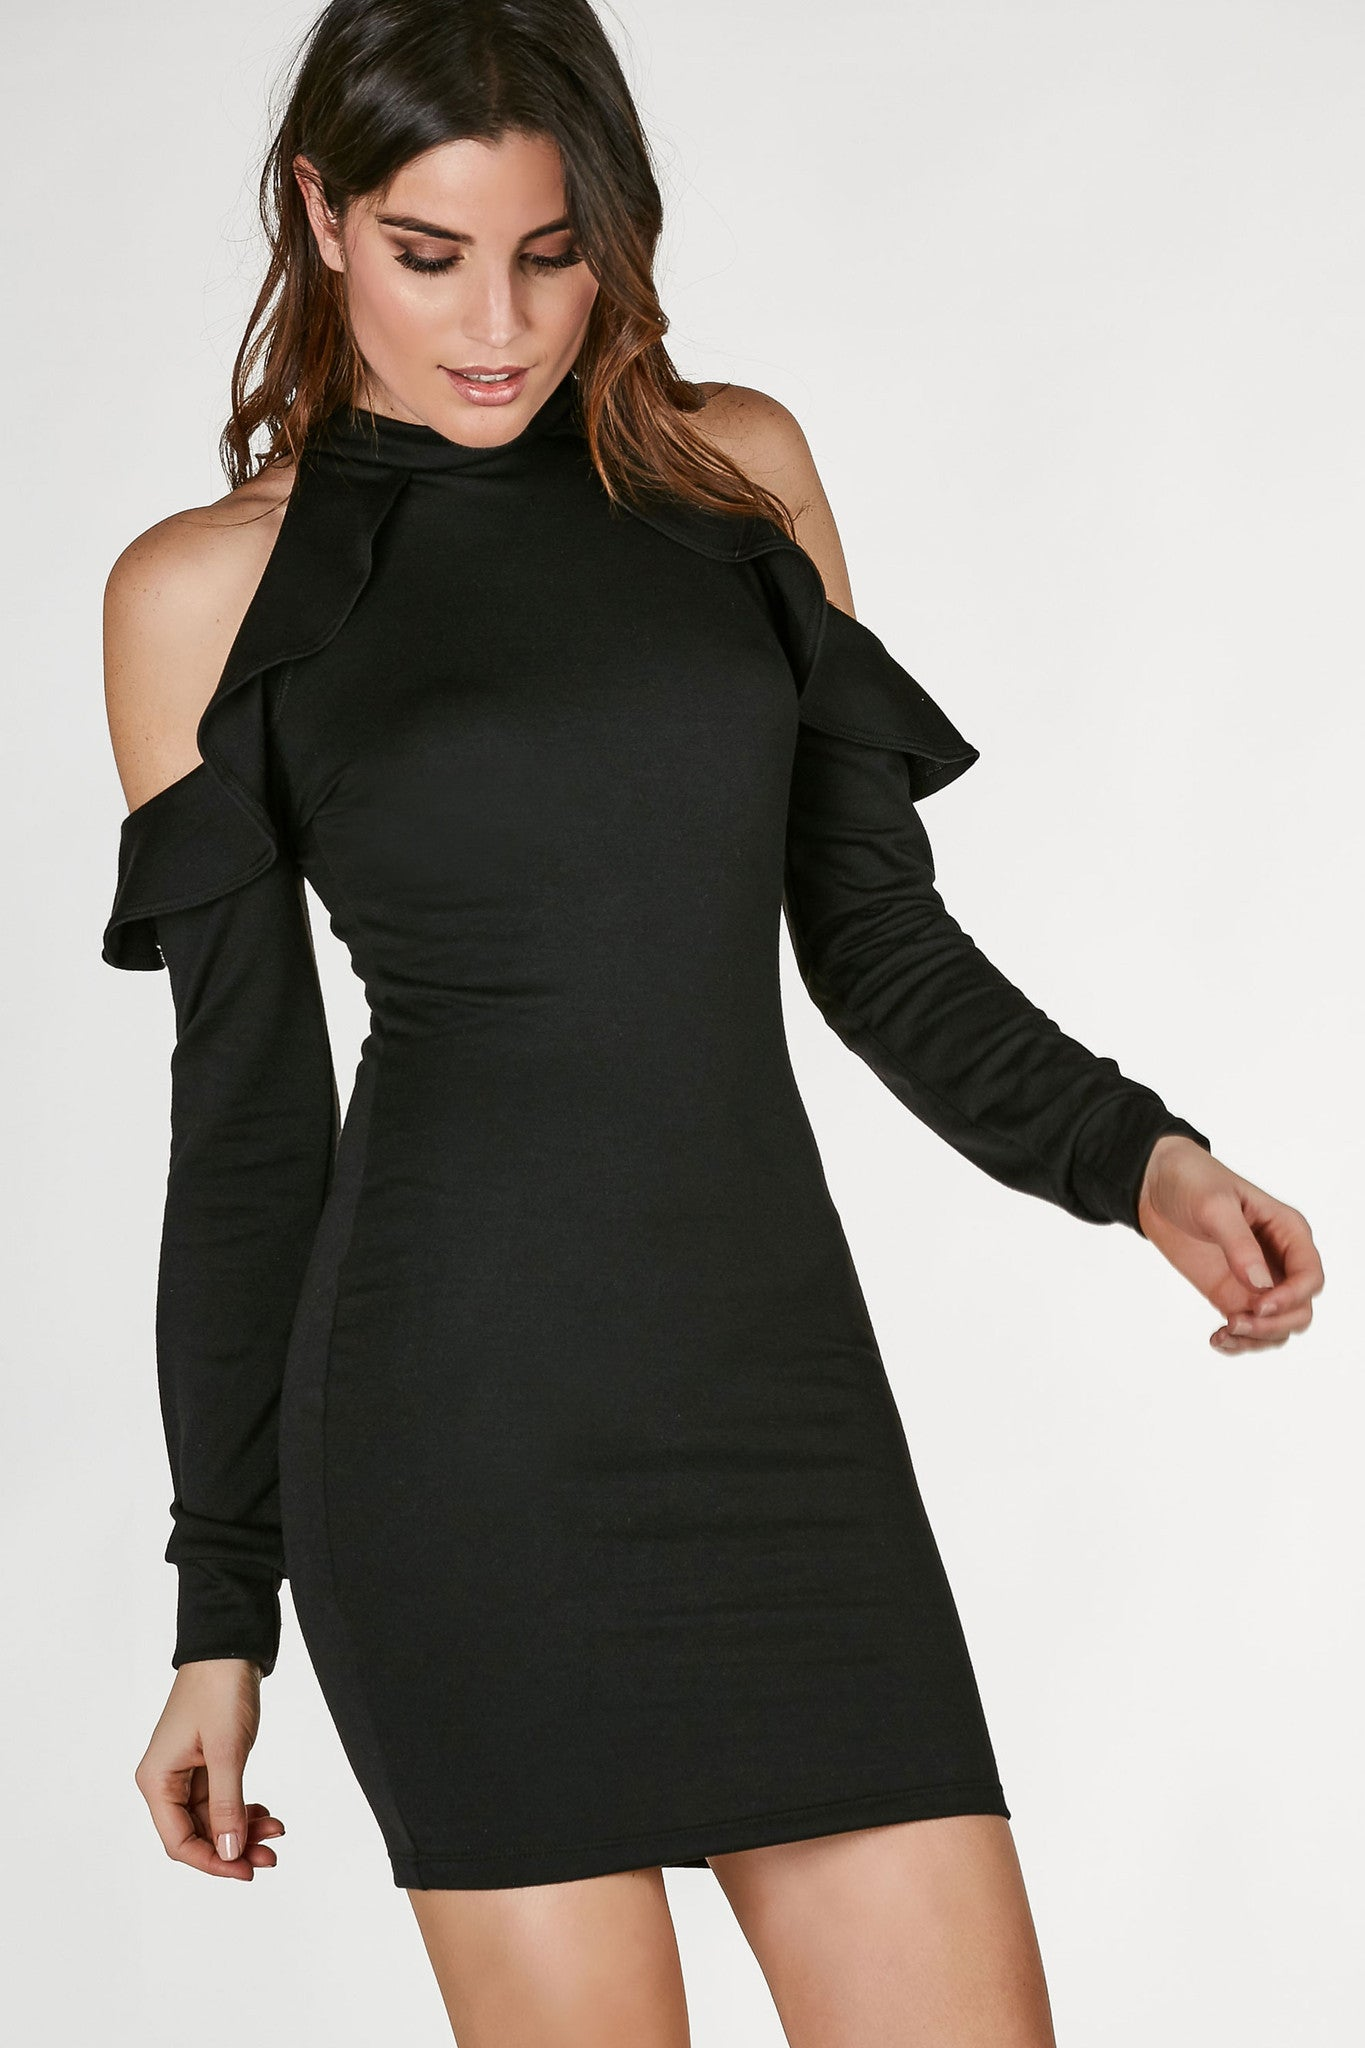 Basic long sleeve dress with a twist. Mock neck with cold shoulder cut outs and flirty ruffle trim for added detail.